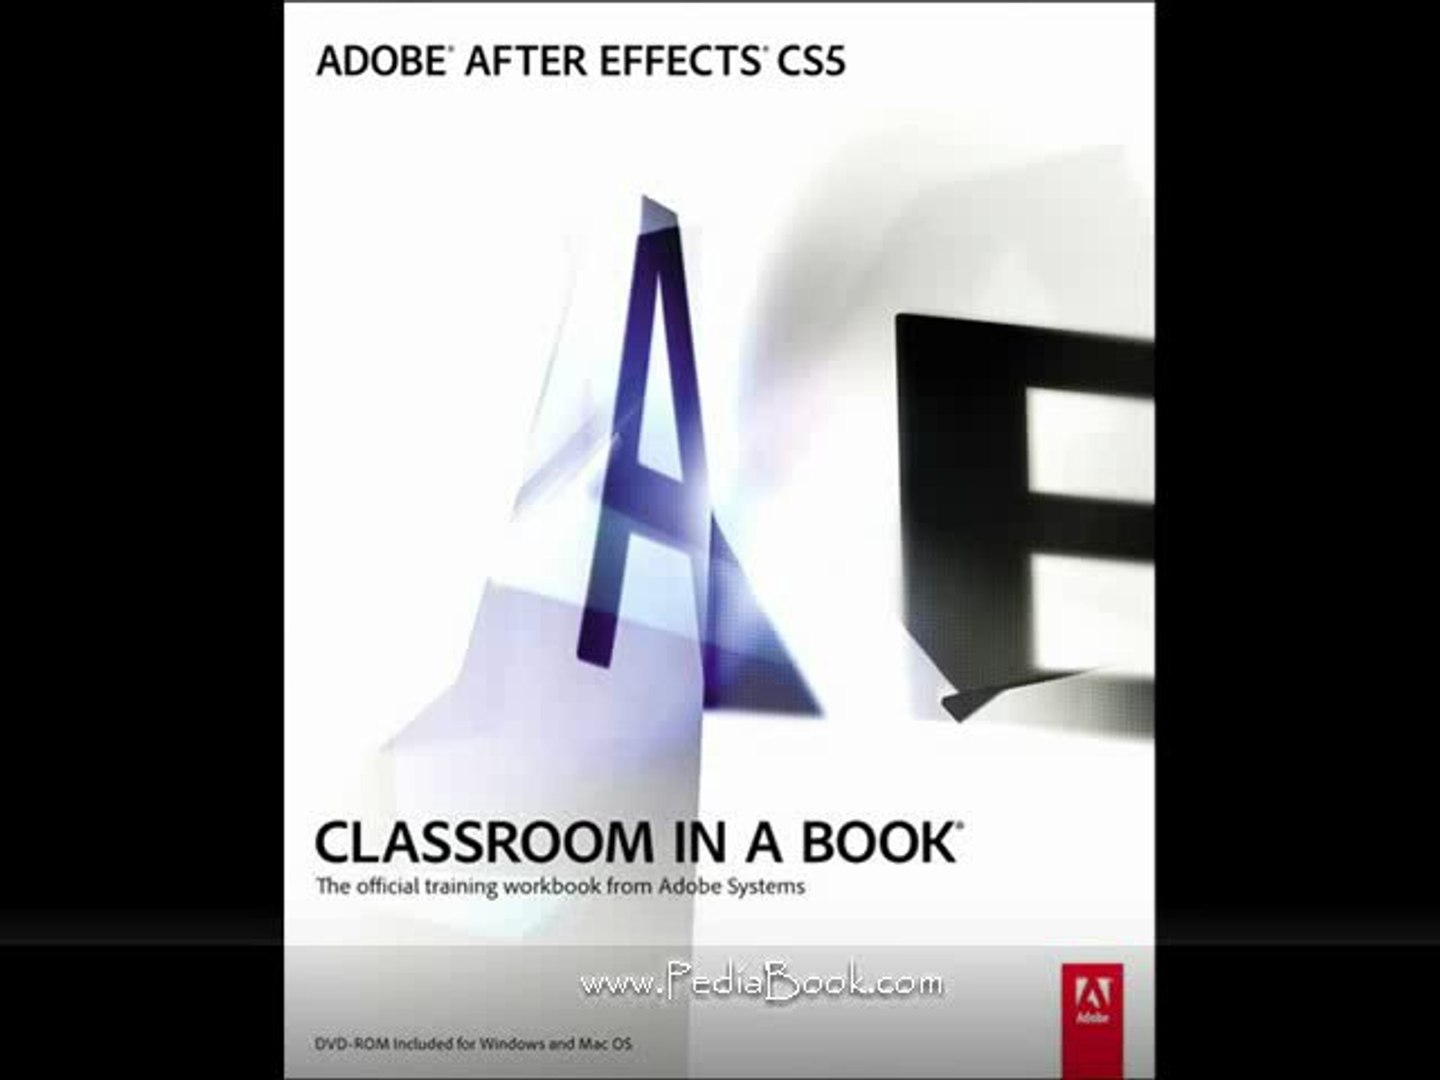 Adobe After Effects CS5 5 10 5 1 x64 2012 Registered Download 100% Working